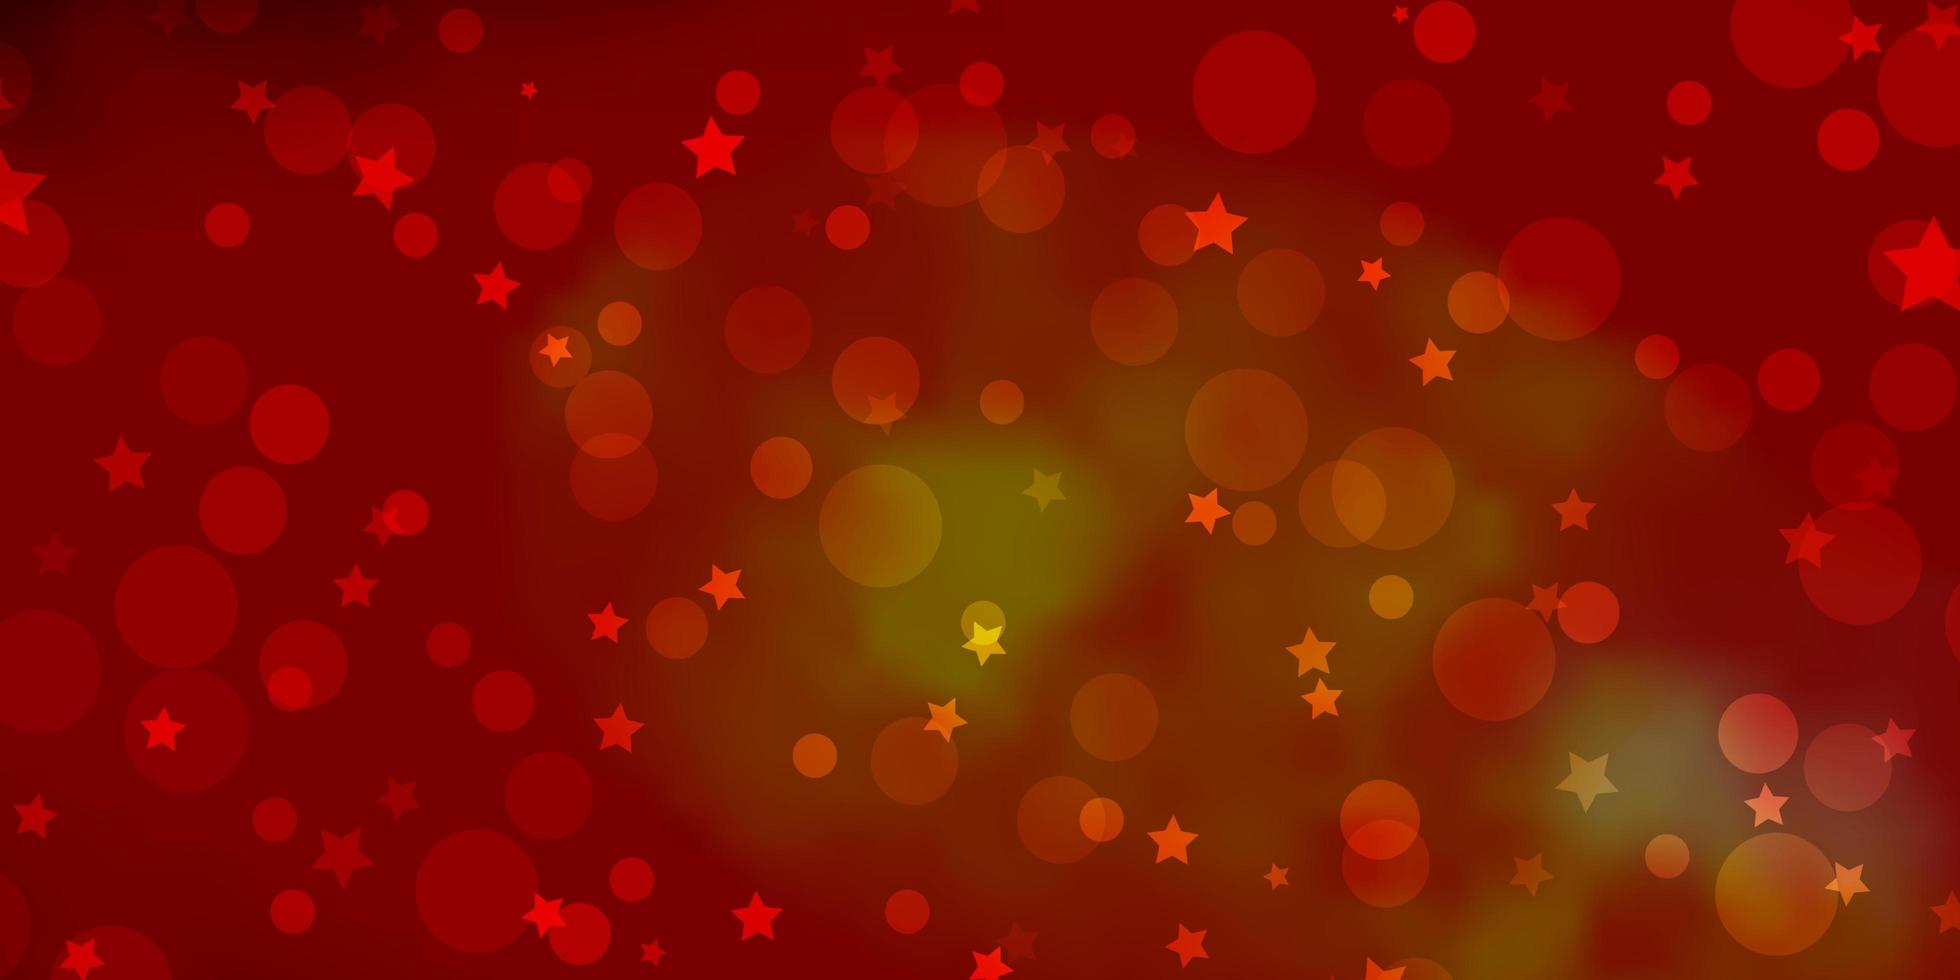 Red and yellow pattern with circles, stars. vector